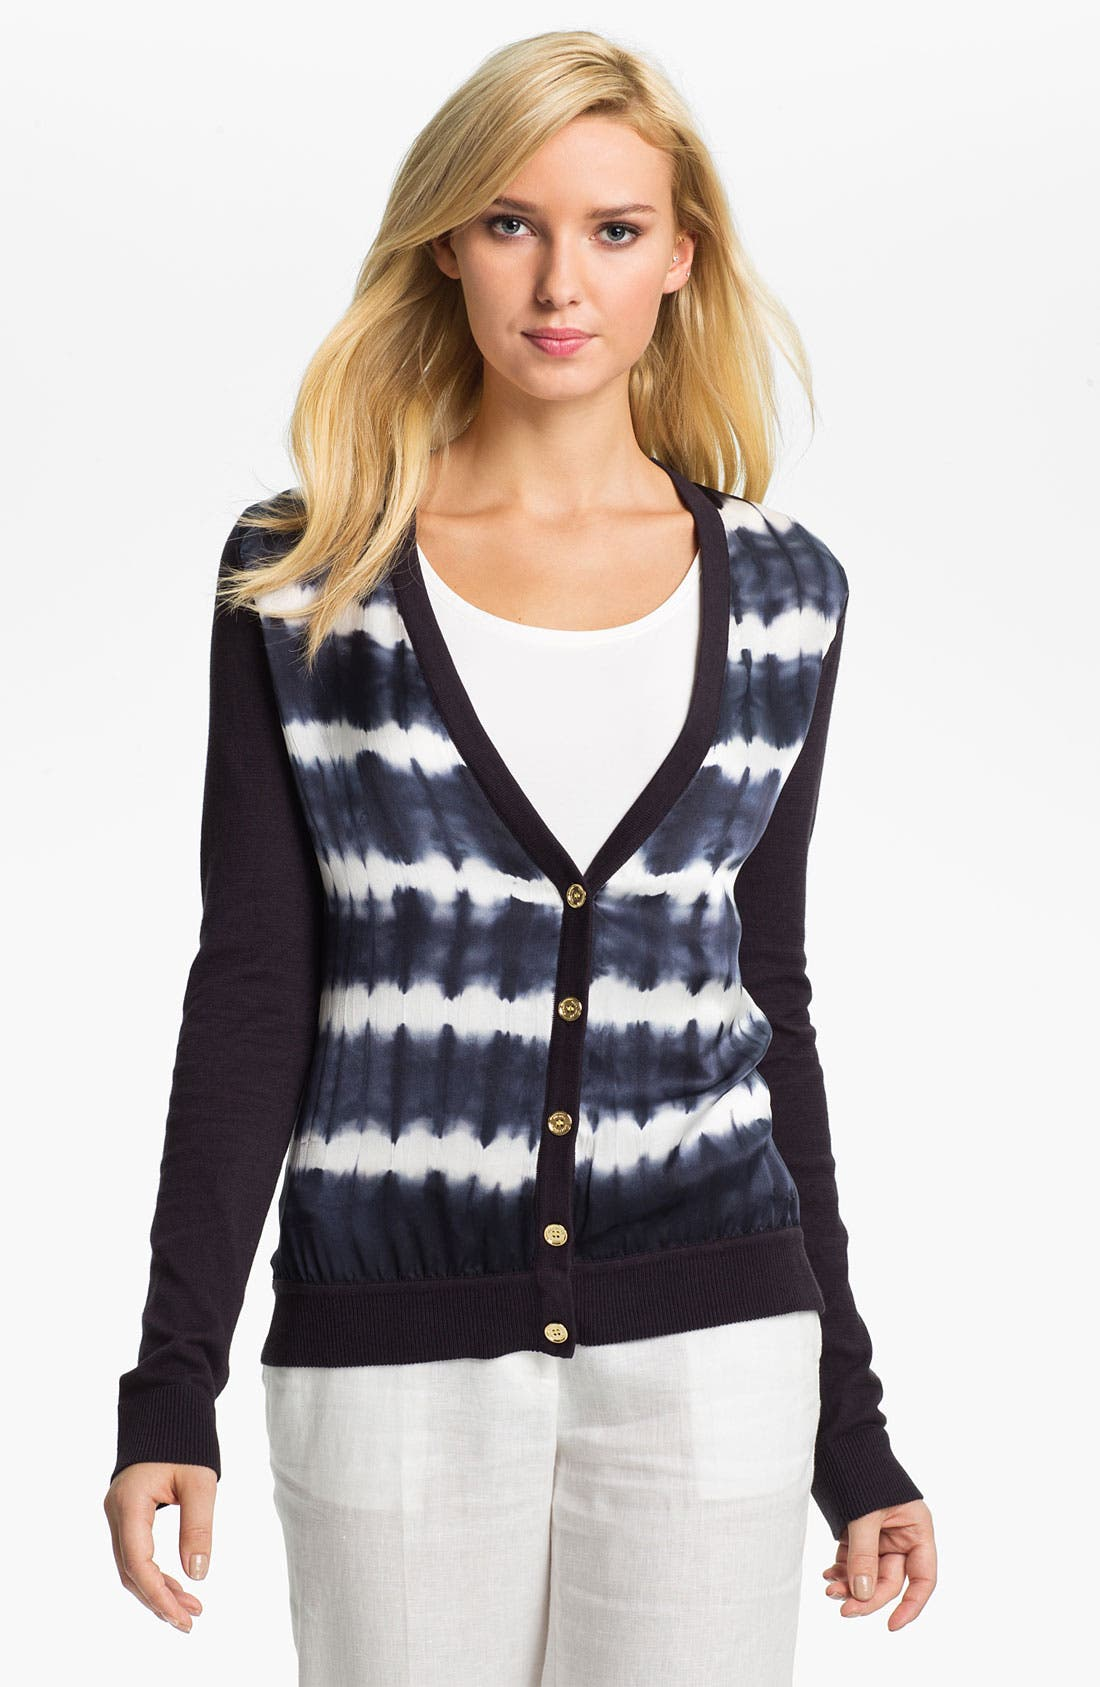 Alternate Image 1 Selected - MICHAEL Michael Kors Tie Dye Front Cardigan